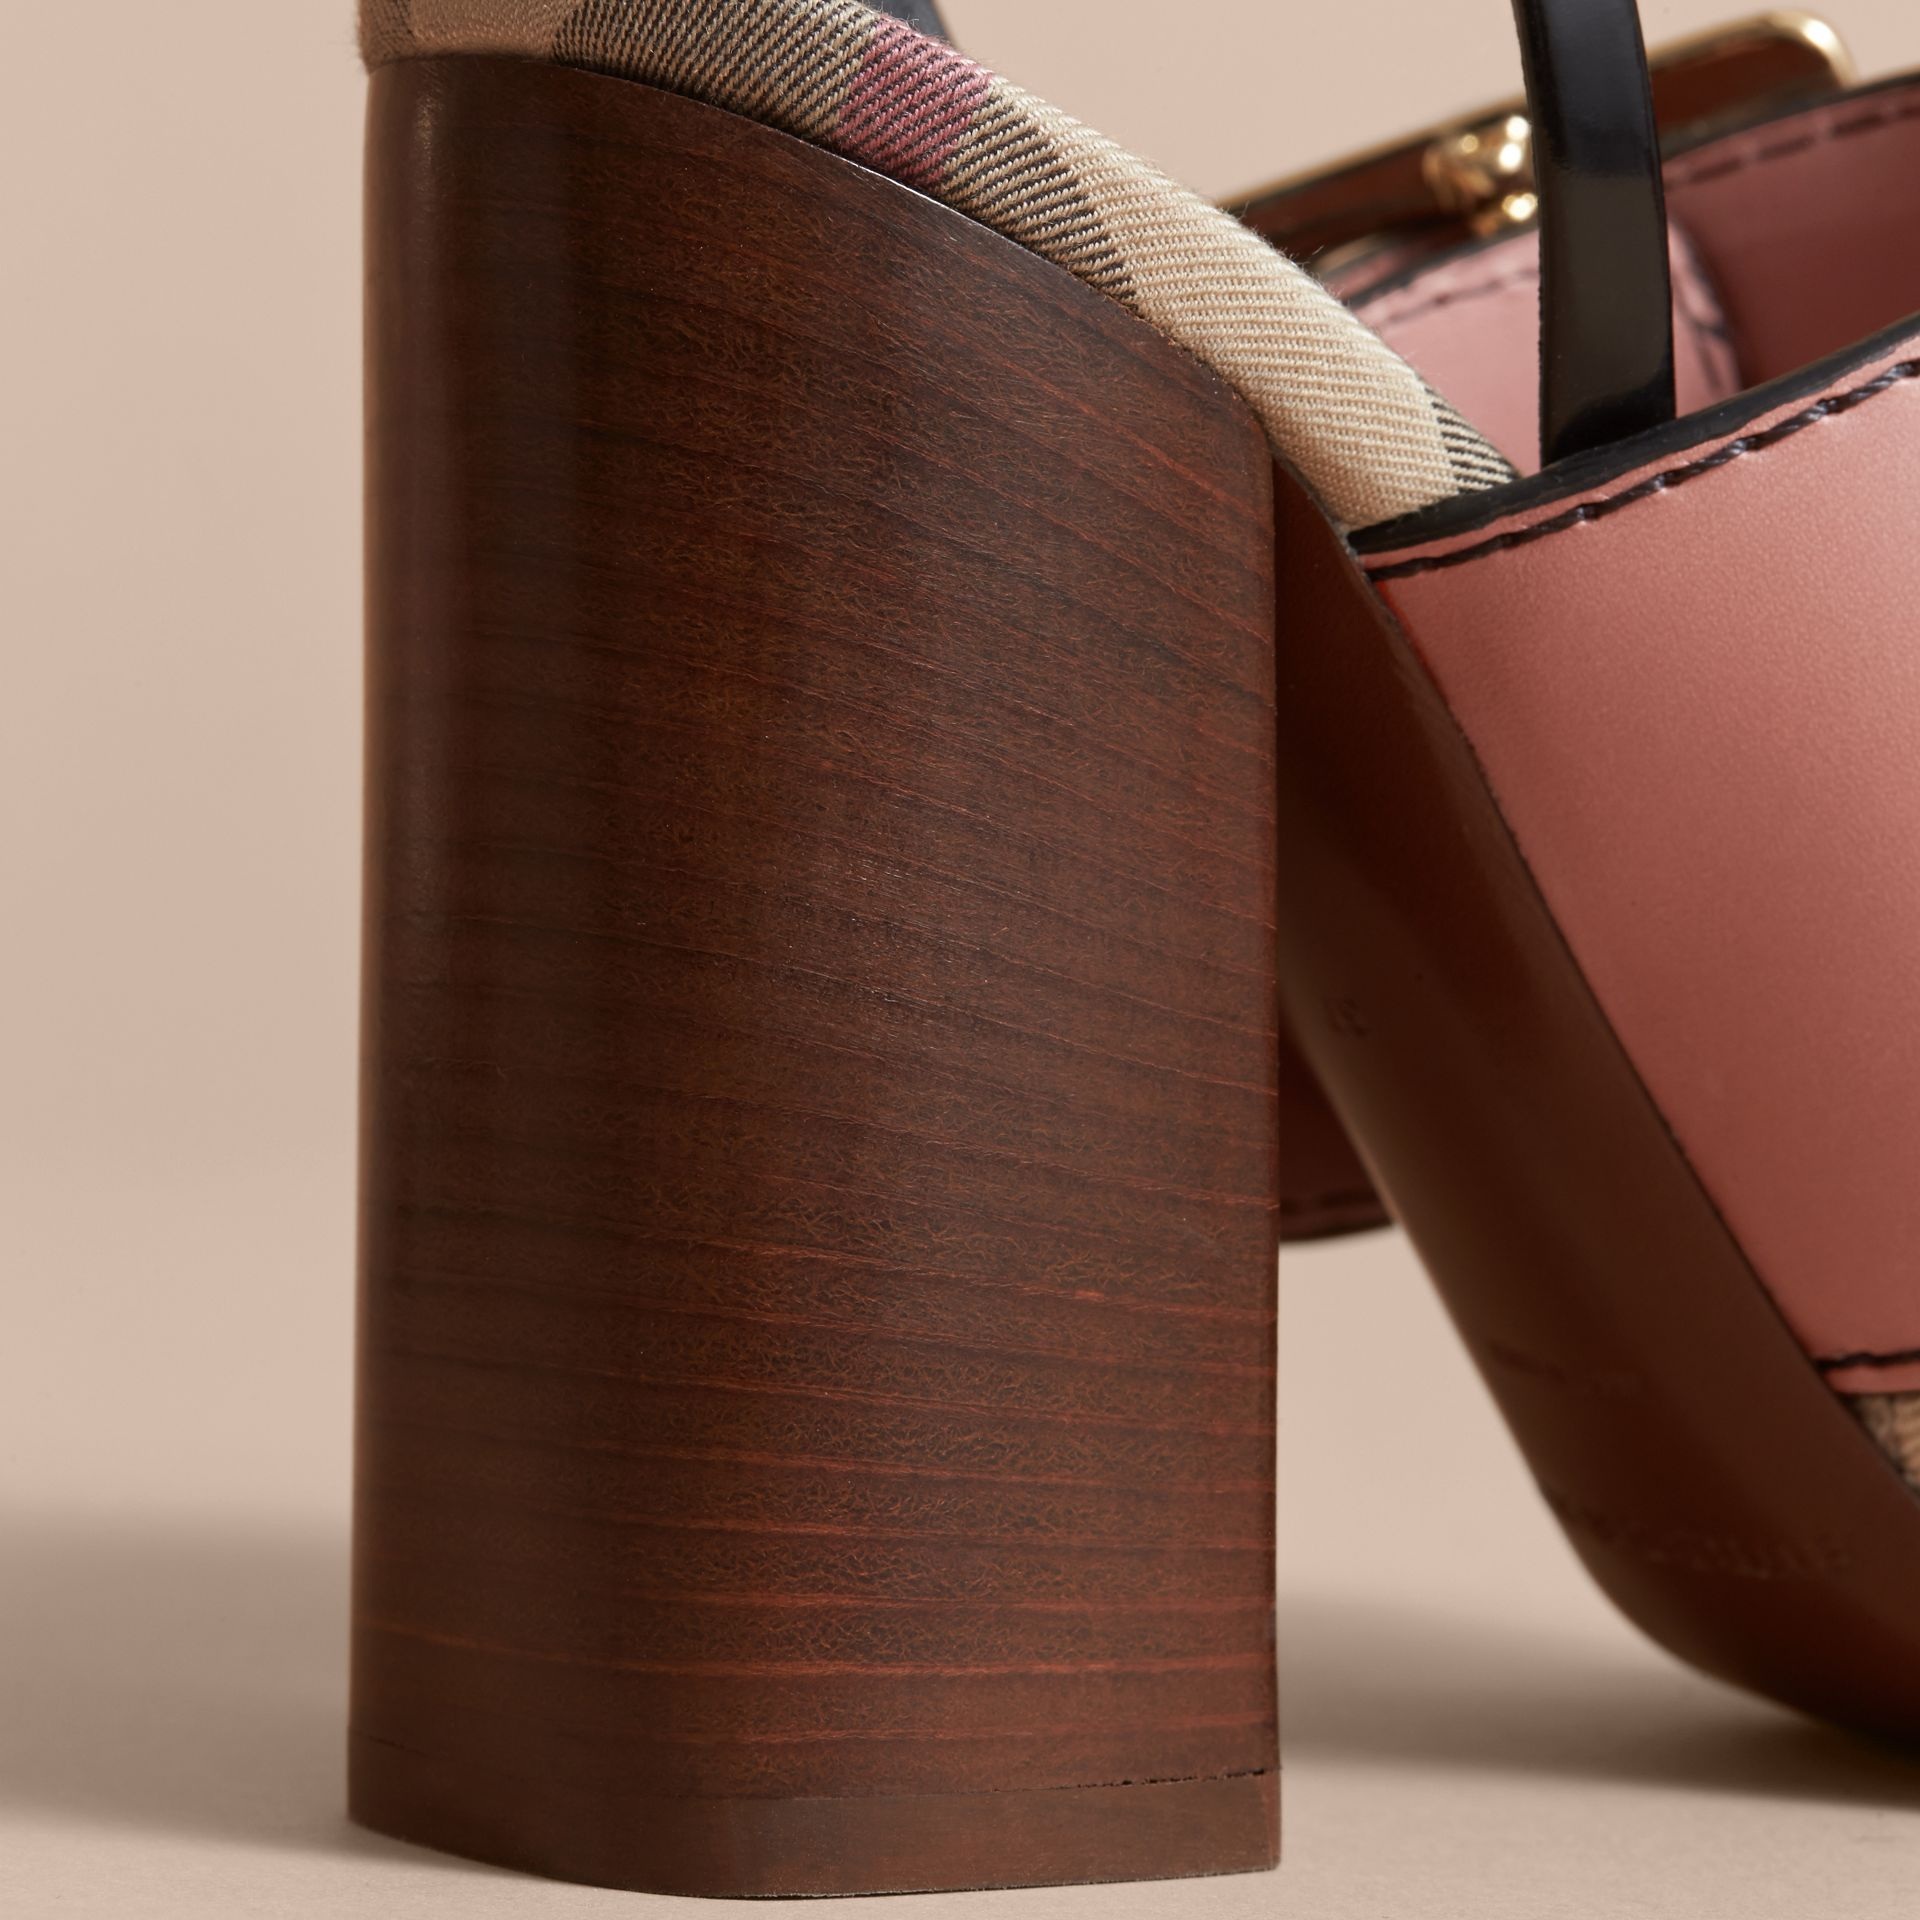 Ledersandalen mit Colour-Blocking-Design und Schnallendetail (Nude-rosa) - Damen | Burberry - Galerie-Bild 5